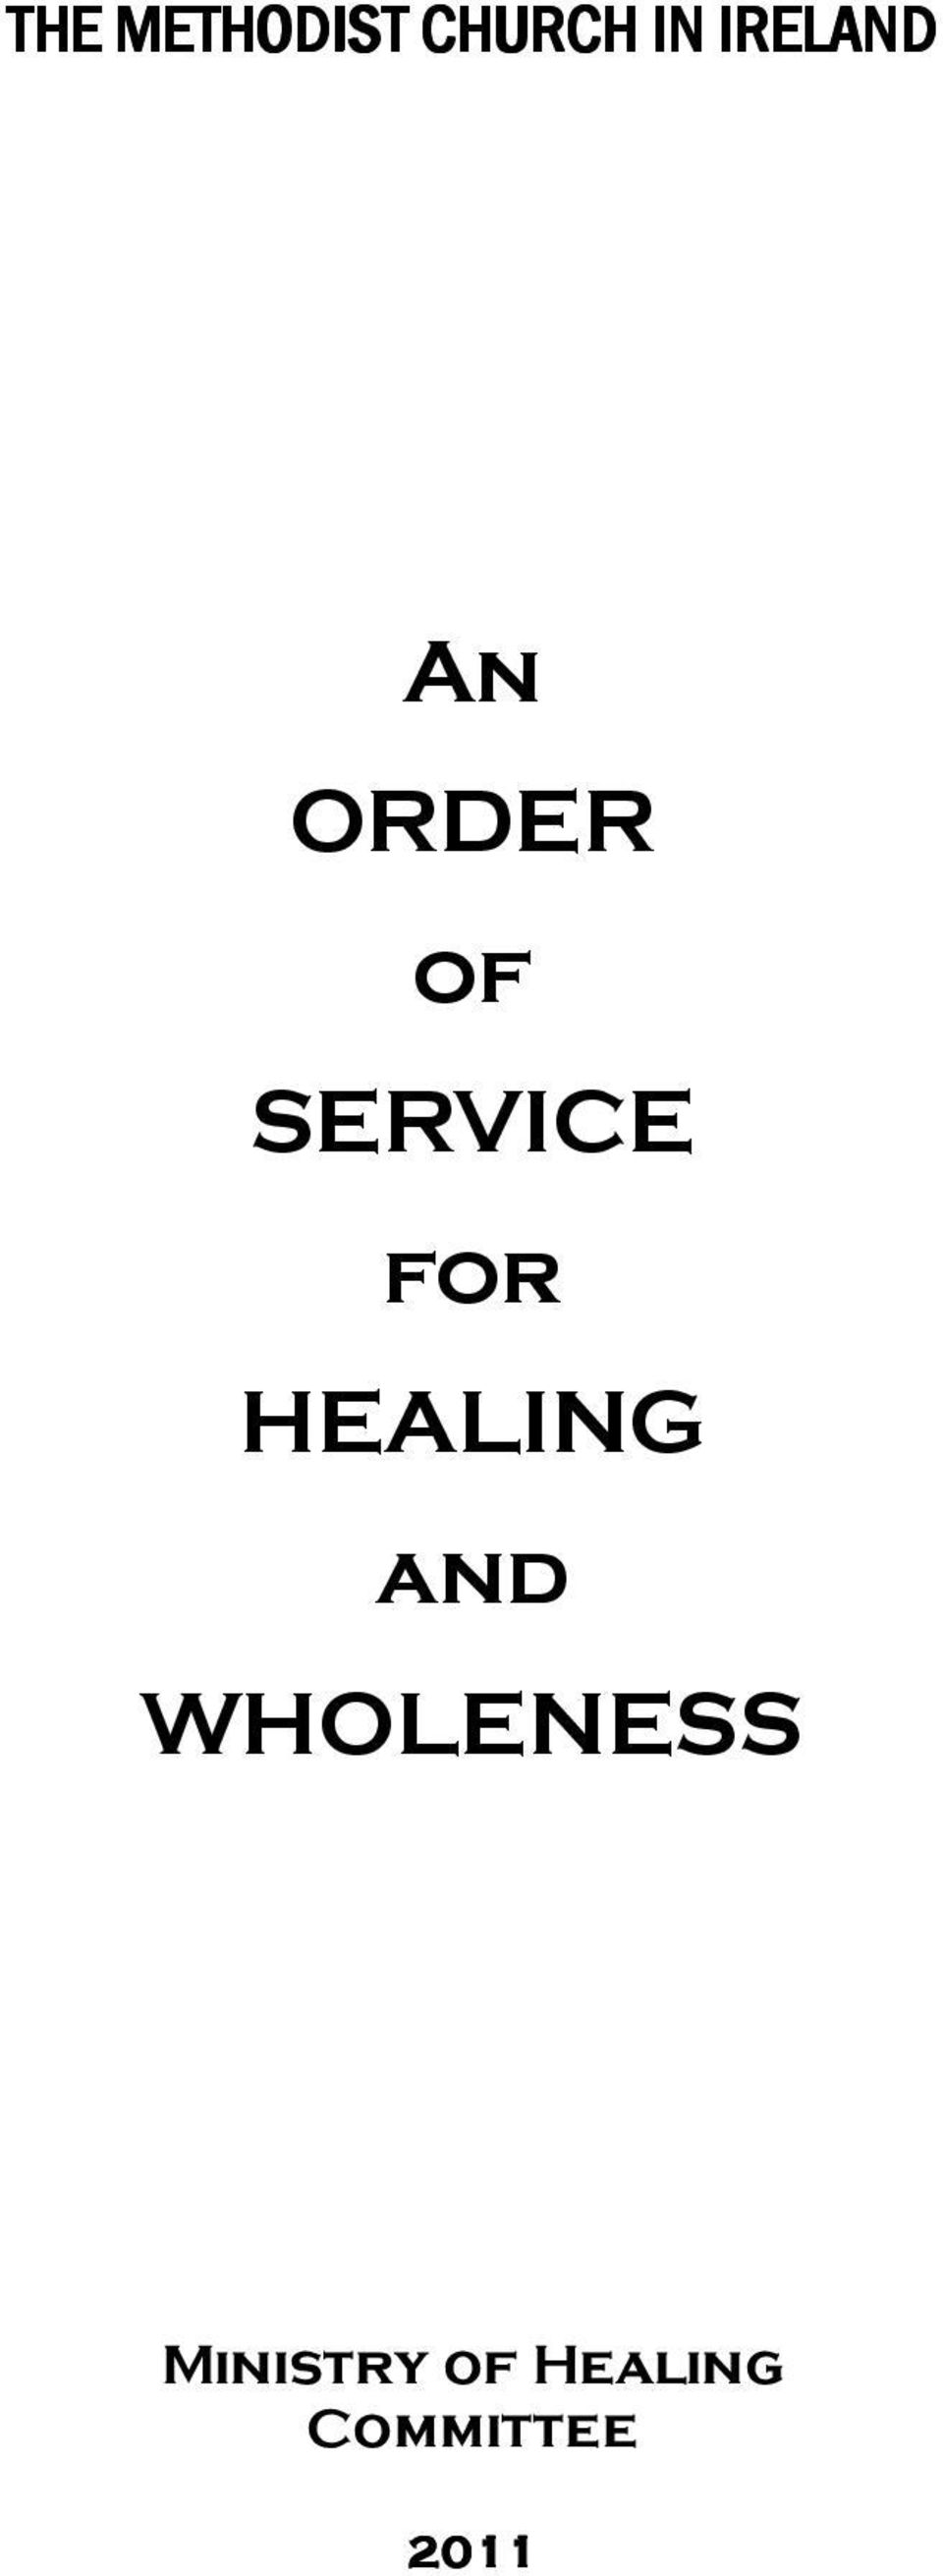 An ORDER of SERVICE for HEALING and WHOLENESS - PDF